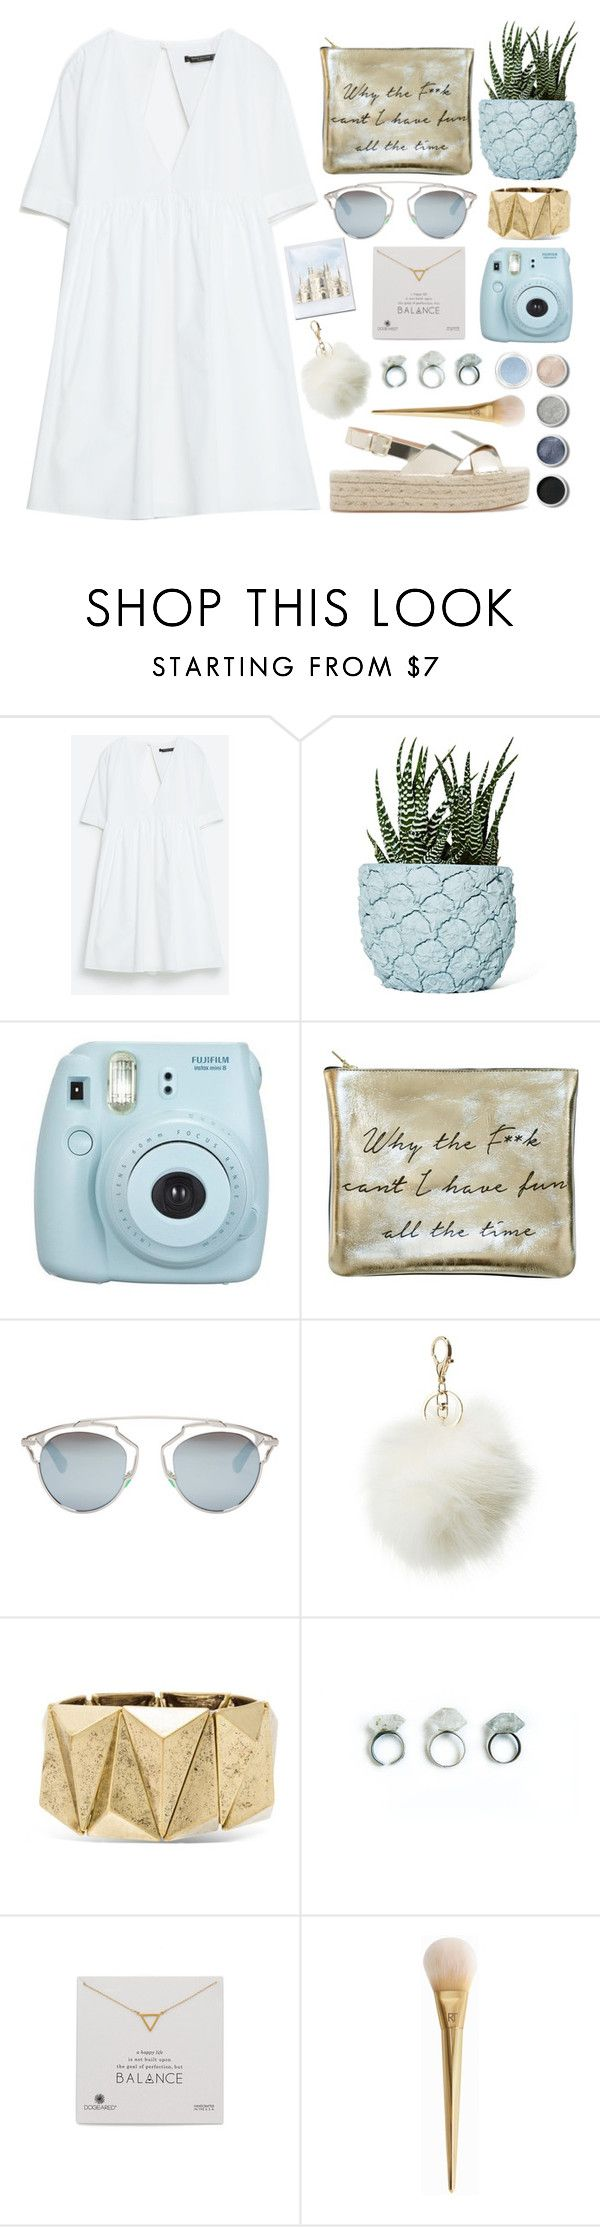 """""""I took a pill in ibiza"""" by sarase ❤ liked on Polyvore featuring Chen Chen & Kai Williams, Christian Dior, Charlotte Russe, Steve Madden, Terre Mère, Dogeared and Givenchy"""